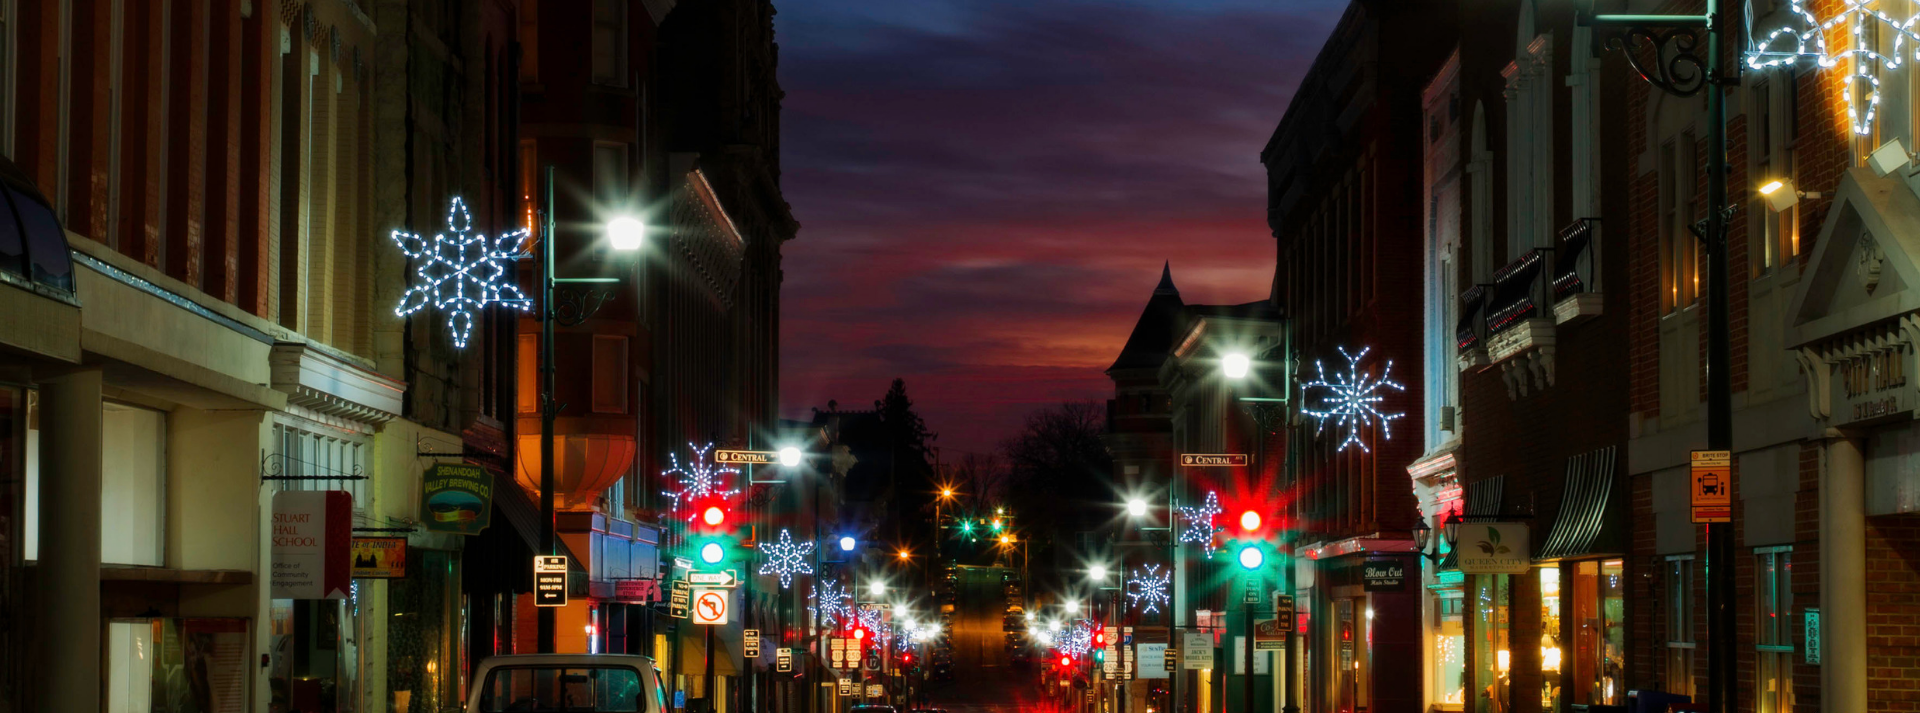 downtown staunton during the holidays